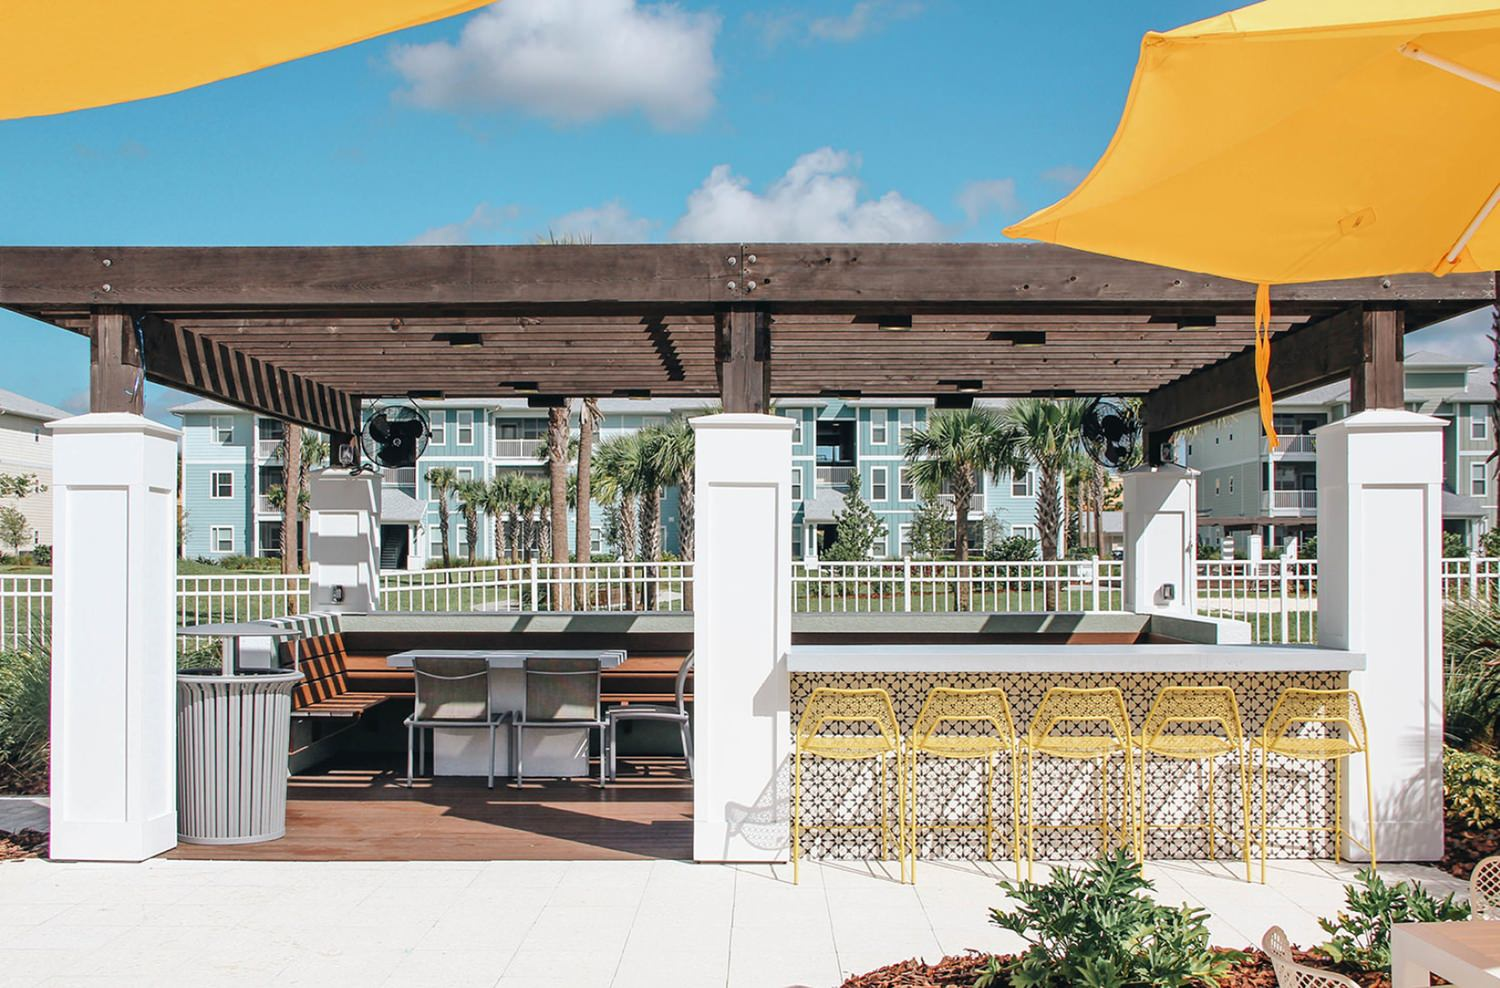 A building next to a open patio that is full of chairs and tables with umbrellas.